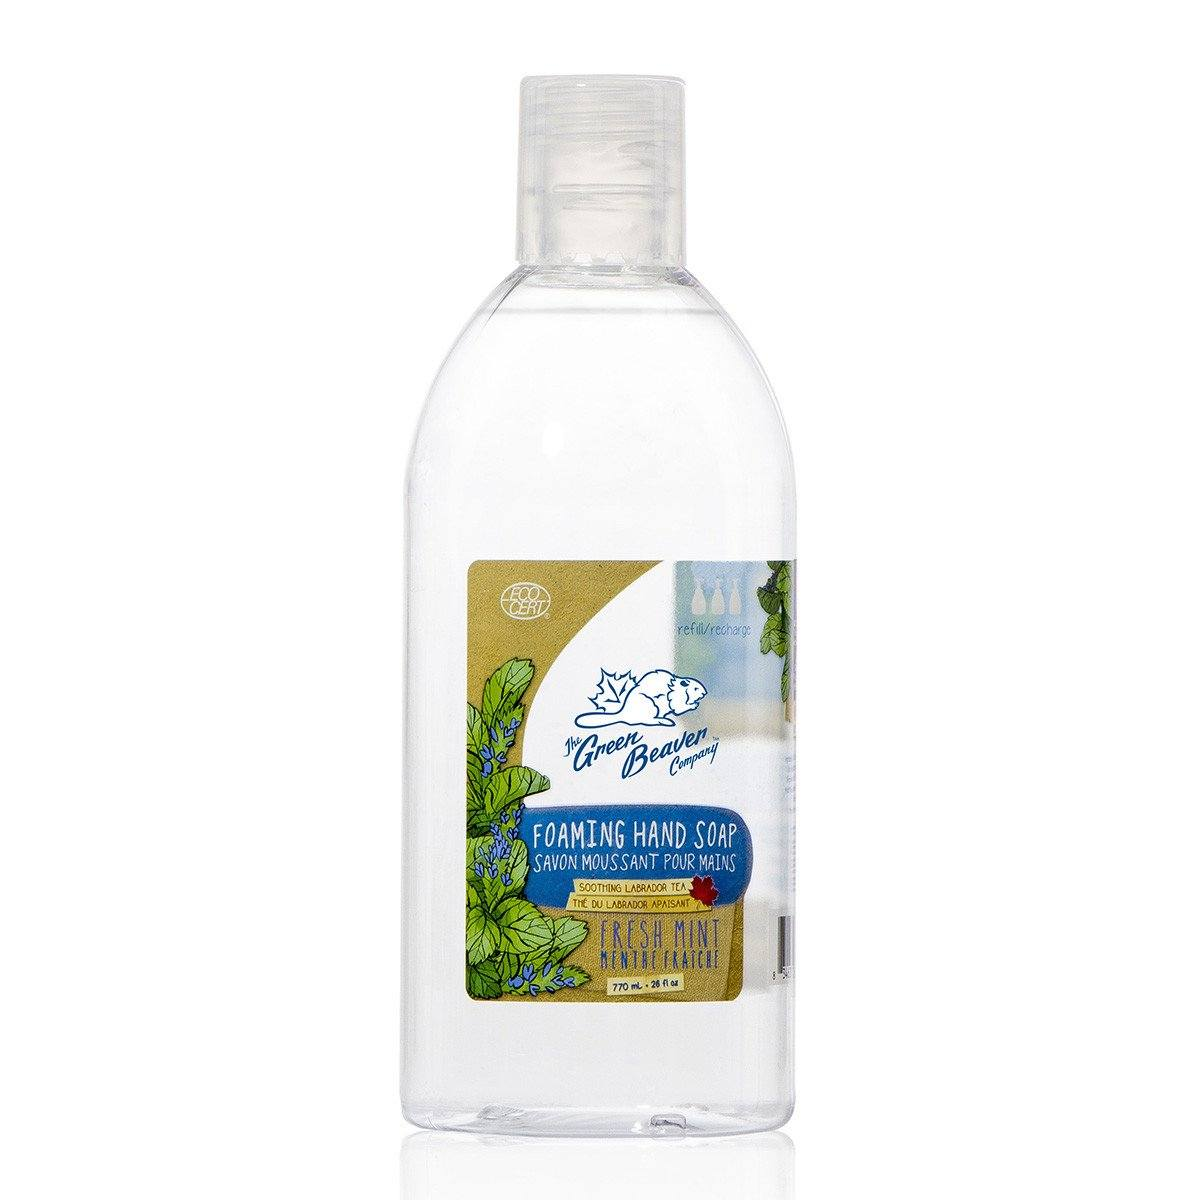 Personal Care,Gluten Free,Vegan,Vegetarian - Green Beaver - Fresh Mint Foaming Handwash Refill, 250 Ml